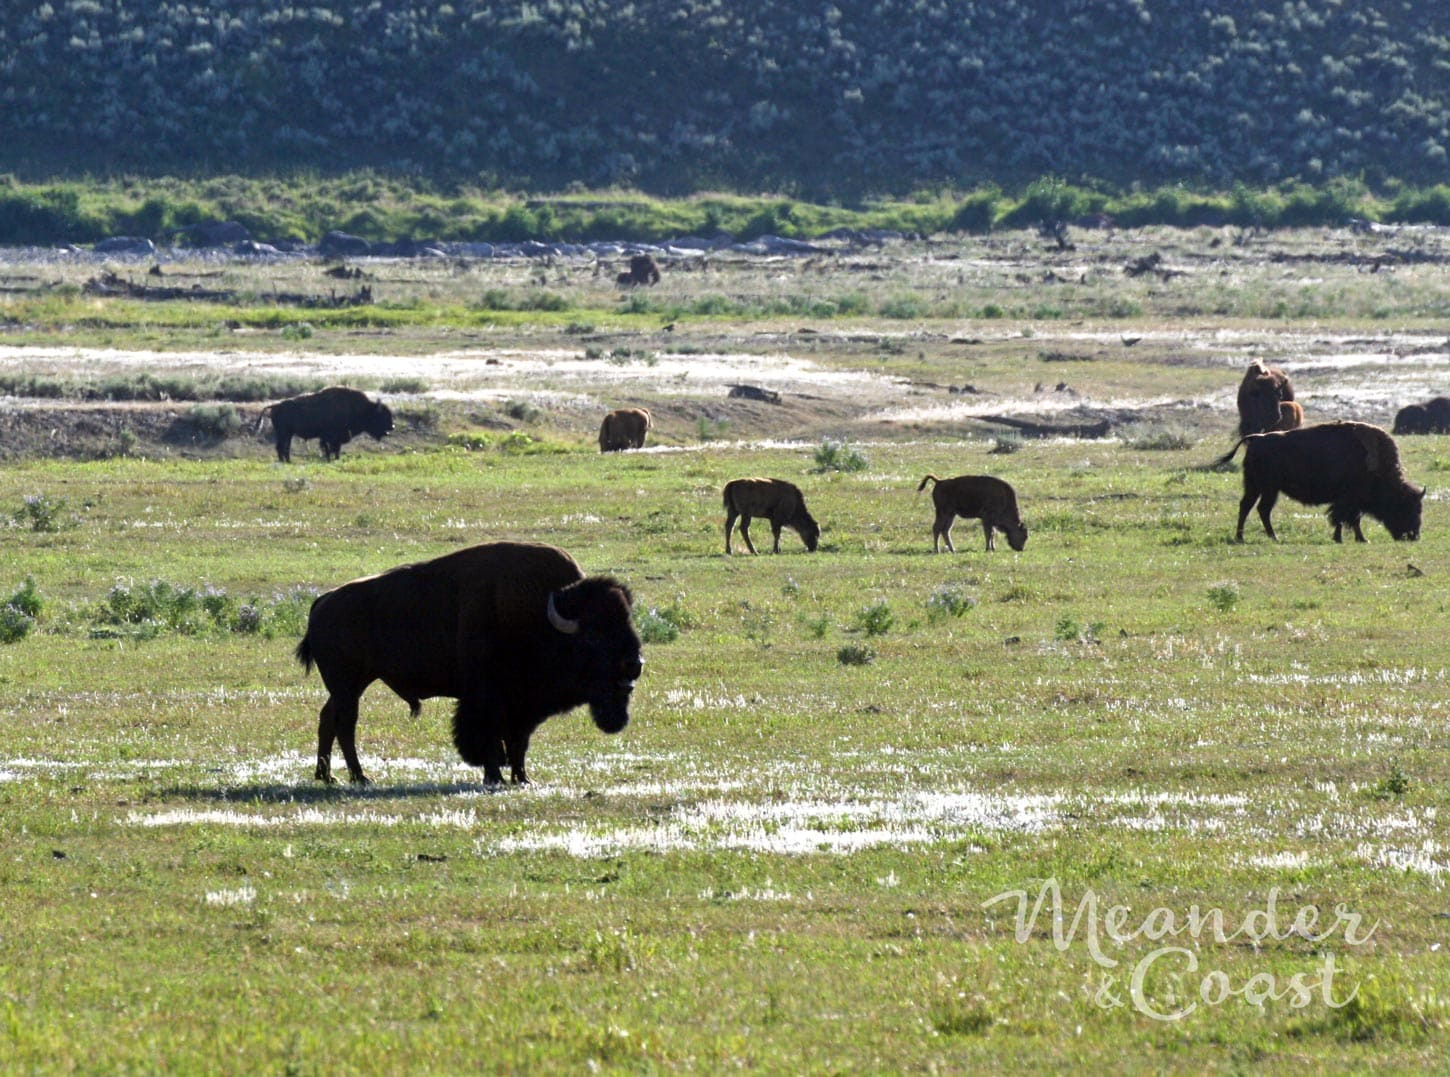 Thousands of bison live here! Lamar Valley Bison, Yellowstone National Park. | Must See Yellowstone National Park Attractions from Meander & Coast travel blog.#yellowstone #nationalpark #yellowstoneattractions #thingstosee #wyoming #lamarvalley #bison #wildlife